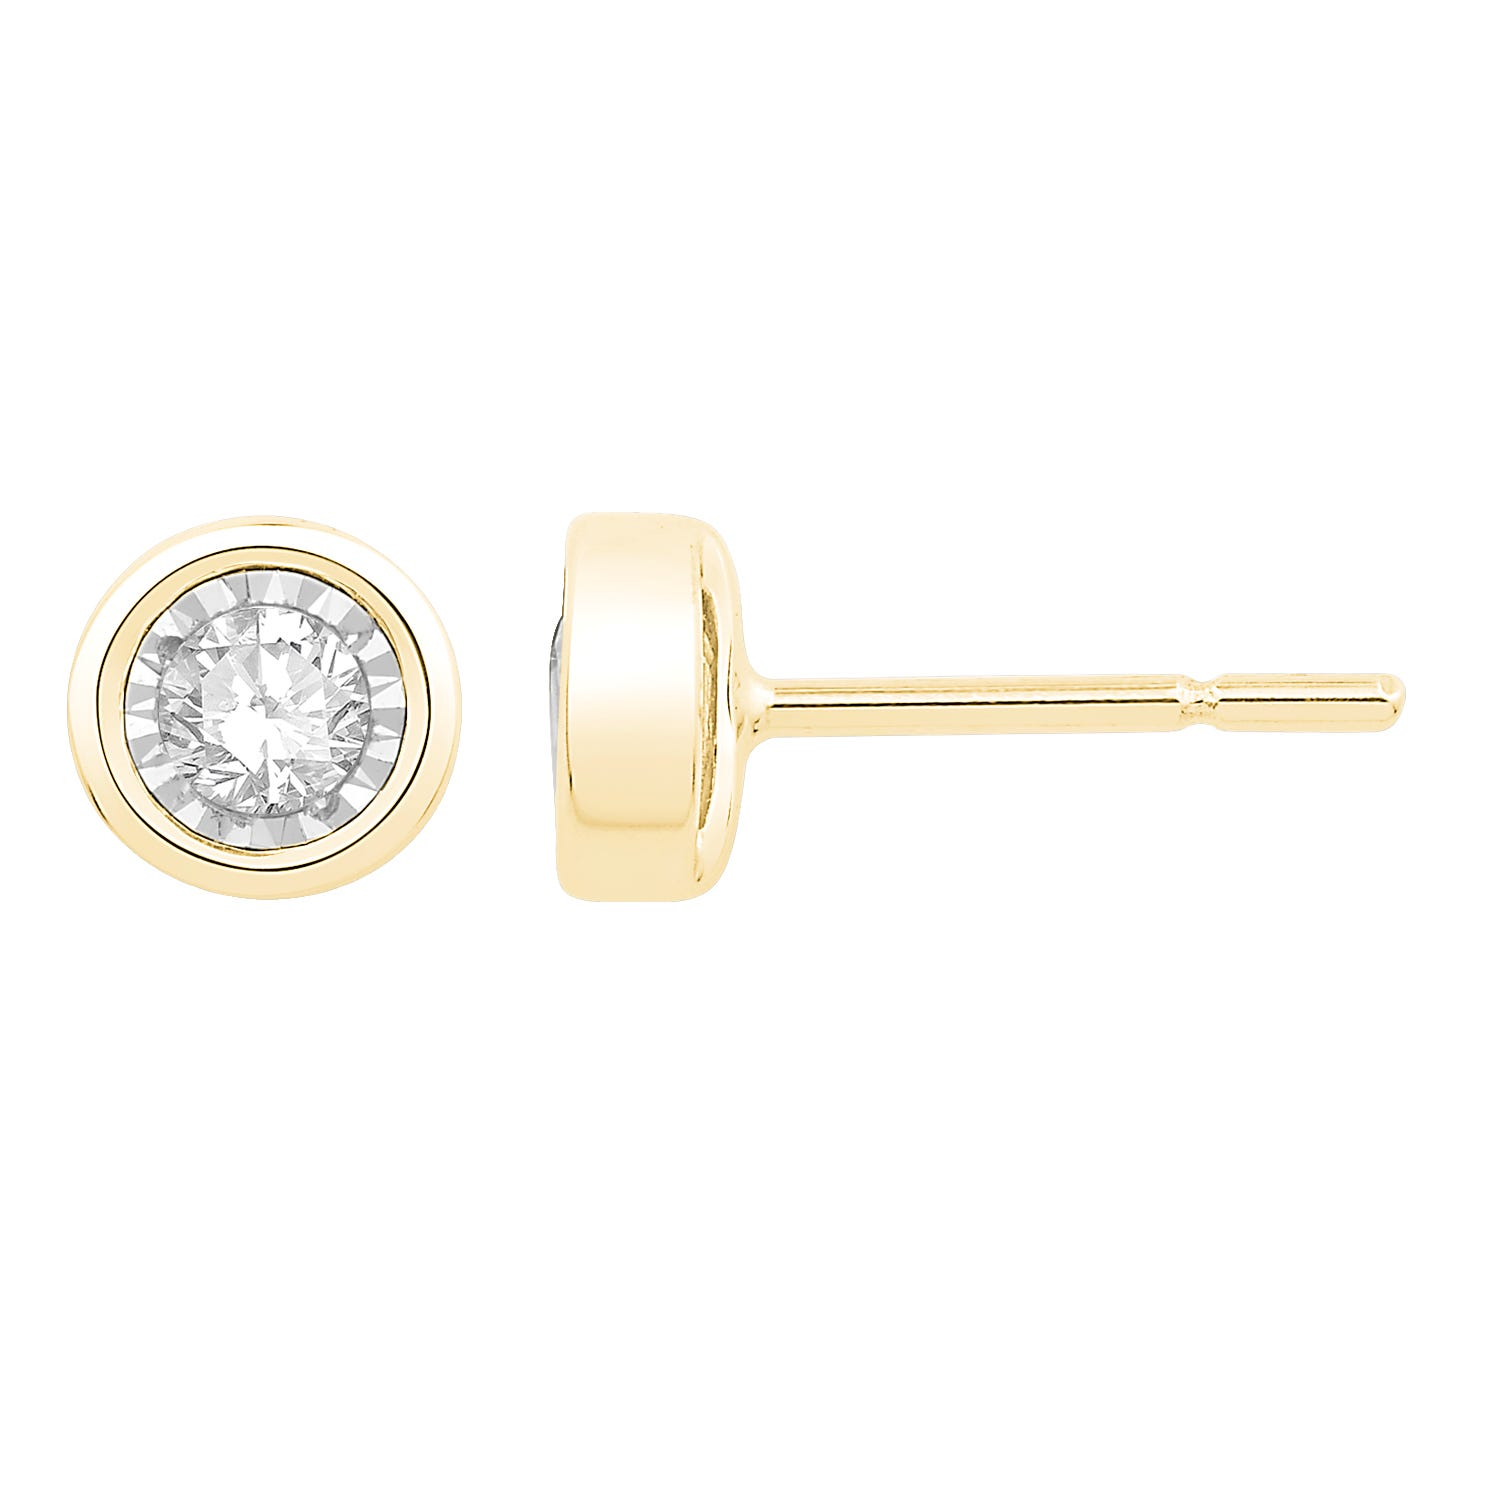 Bezel-Set Diamond 1/10ctw. (HI, I2-3) Solitaire Stud Earrings in 10k Yellow Gold